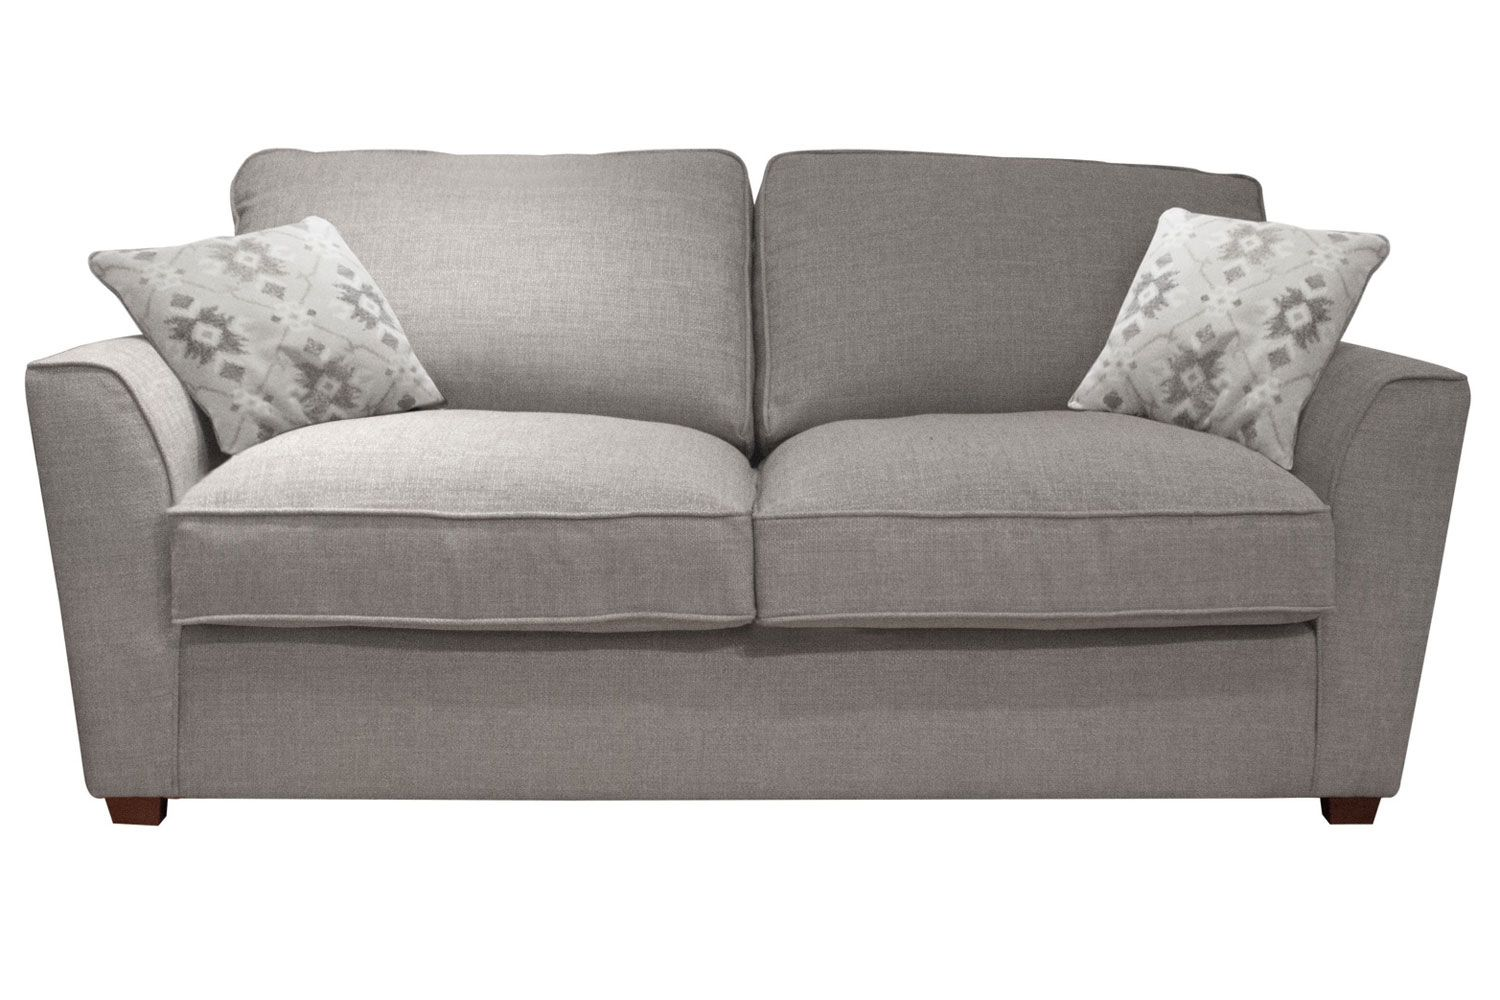 Couches And Sofas Fantasia Corner Sofa Fabric Sofas Shop At Harvey